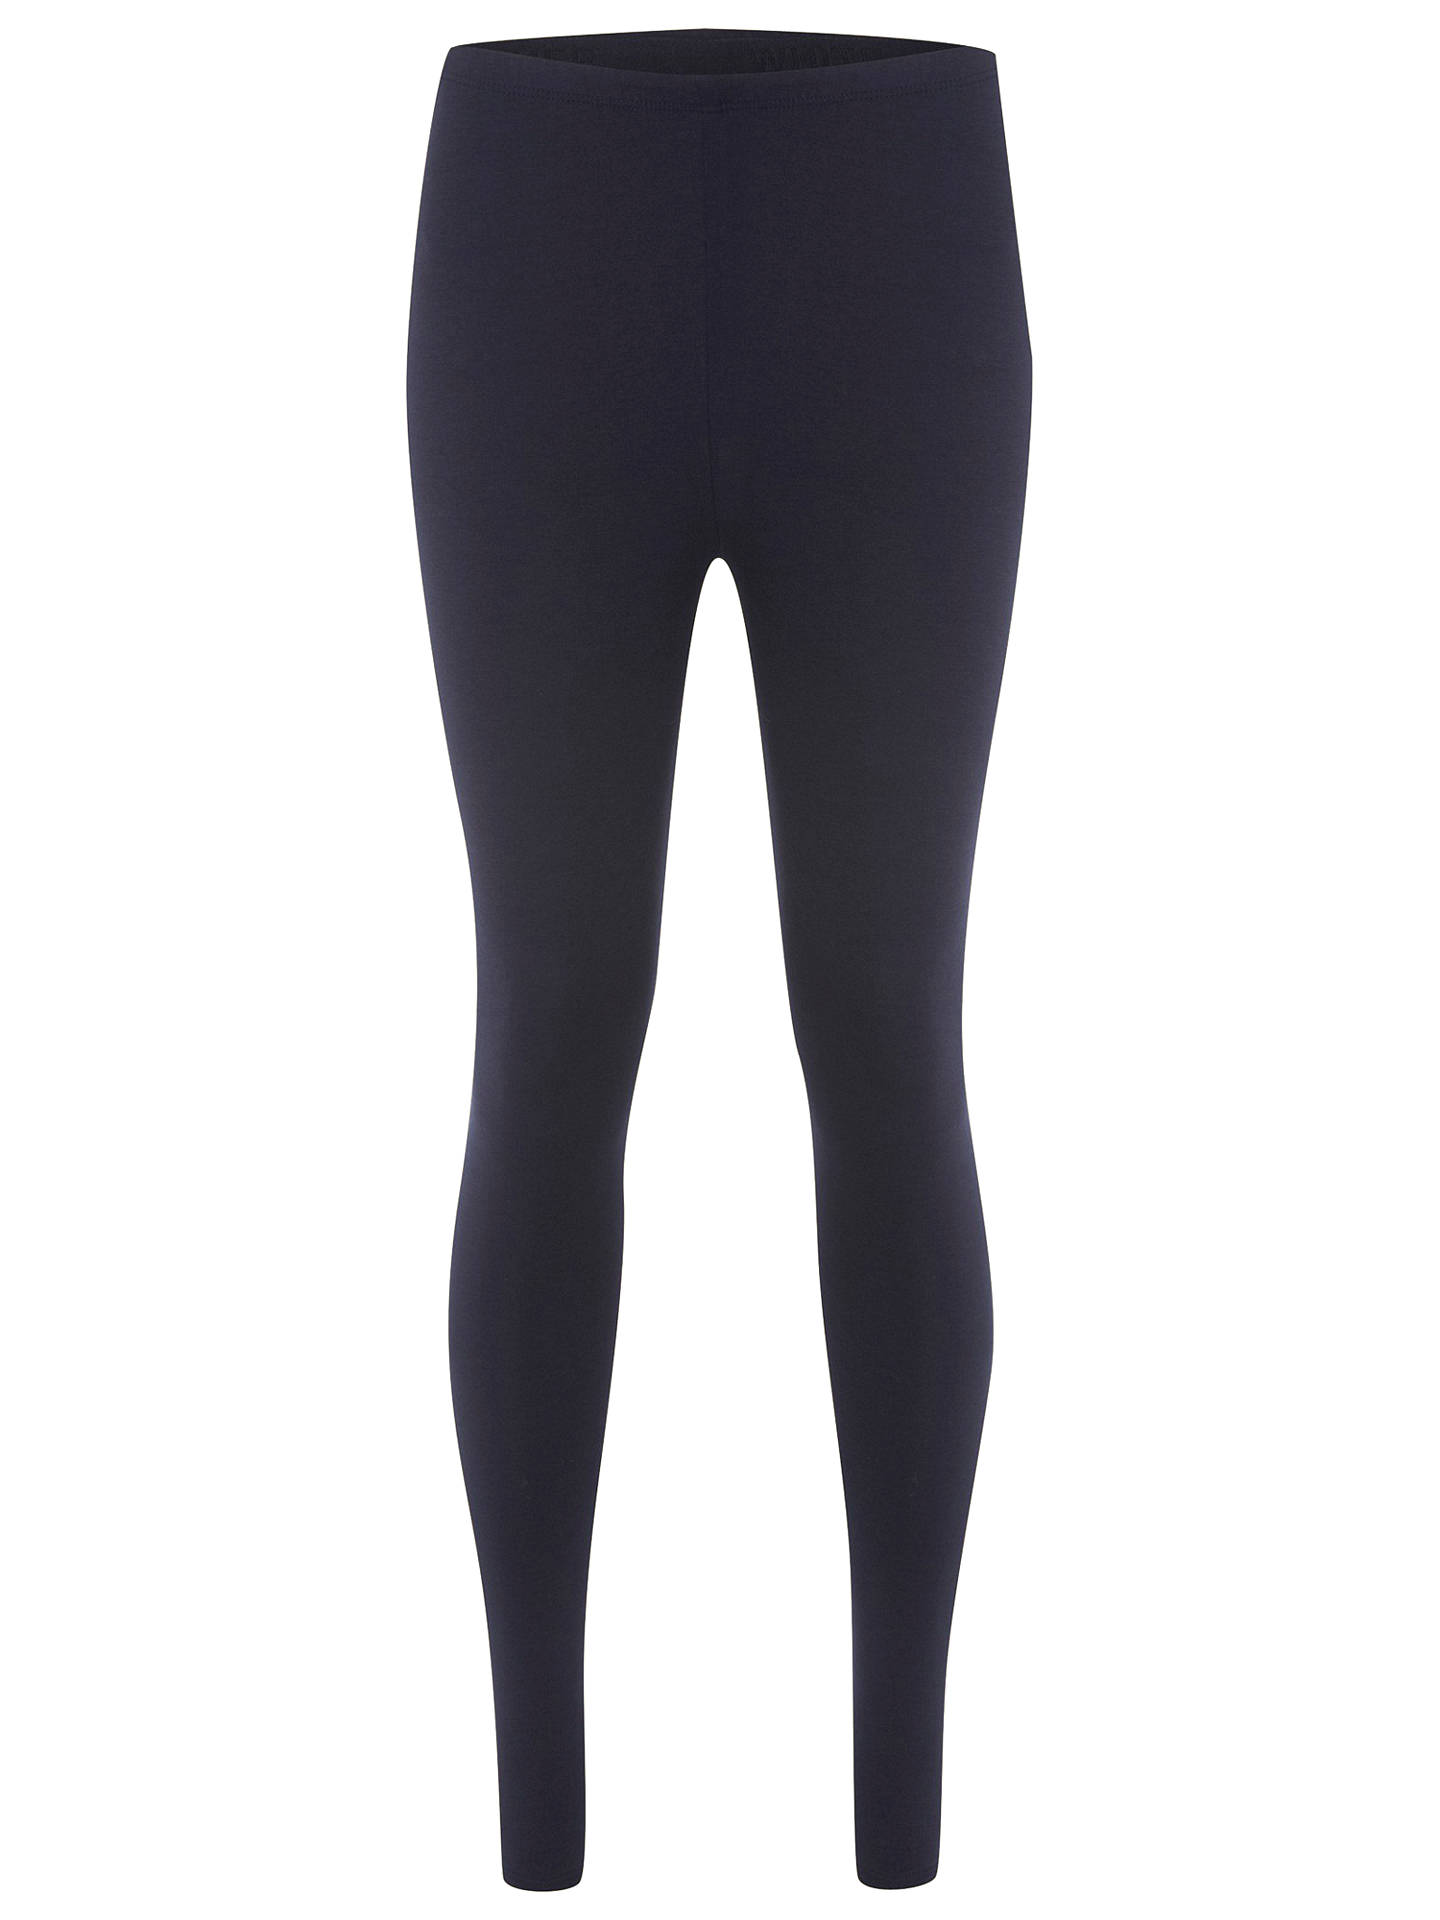 ce30034ad3a770 Buy White Stuff Jumping Lil Leggings, Navy, 6 Online at johnlewis.com ...